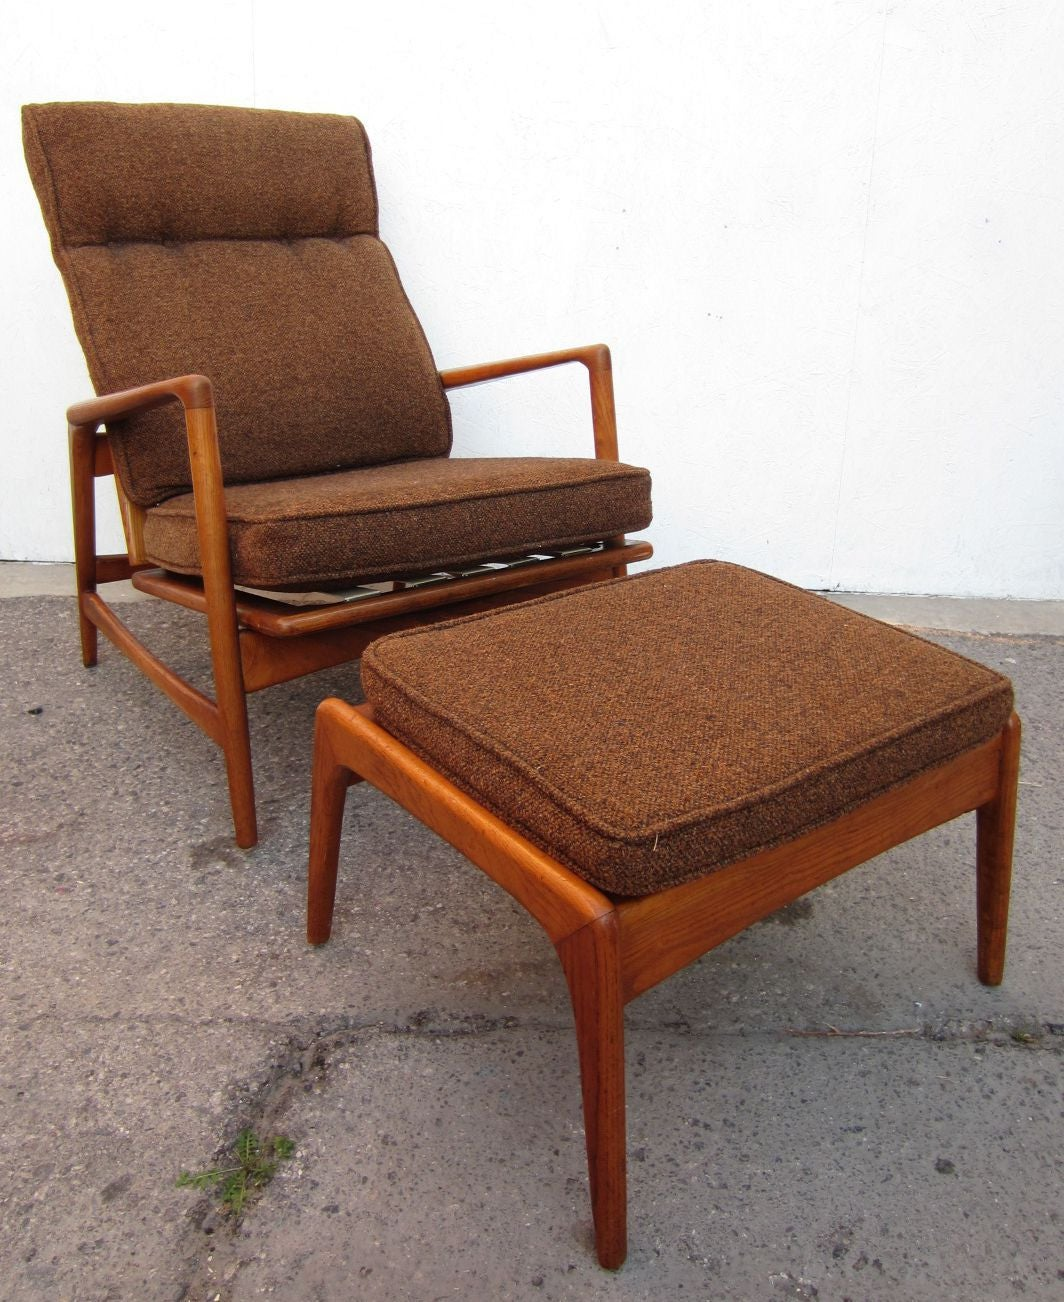 Mid Century Chair And Ottoman: 1950 Danish Mid-Century Modern Lounge Chair And Ottoman